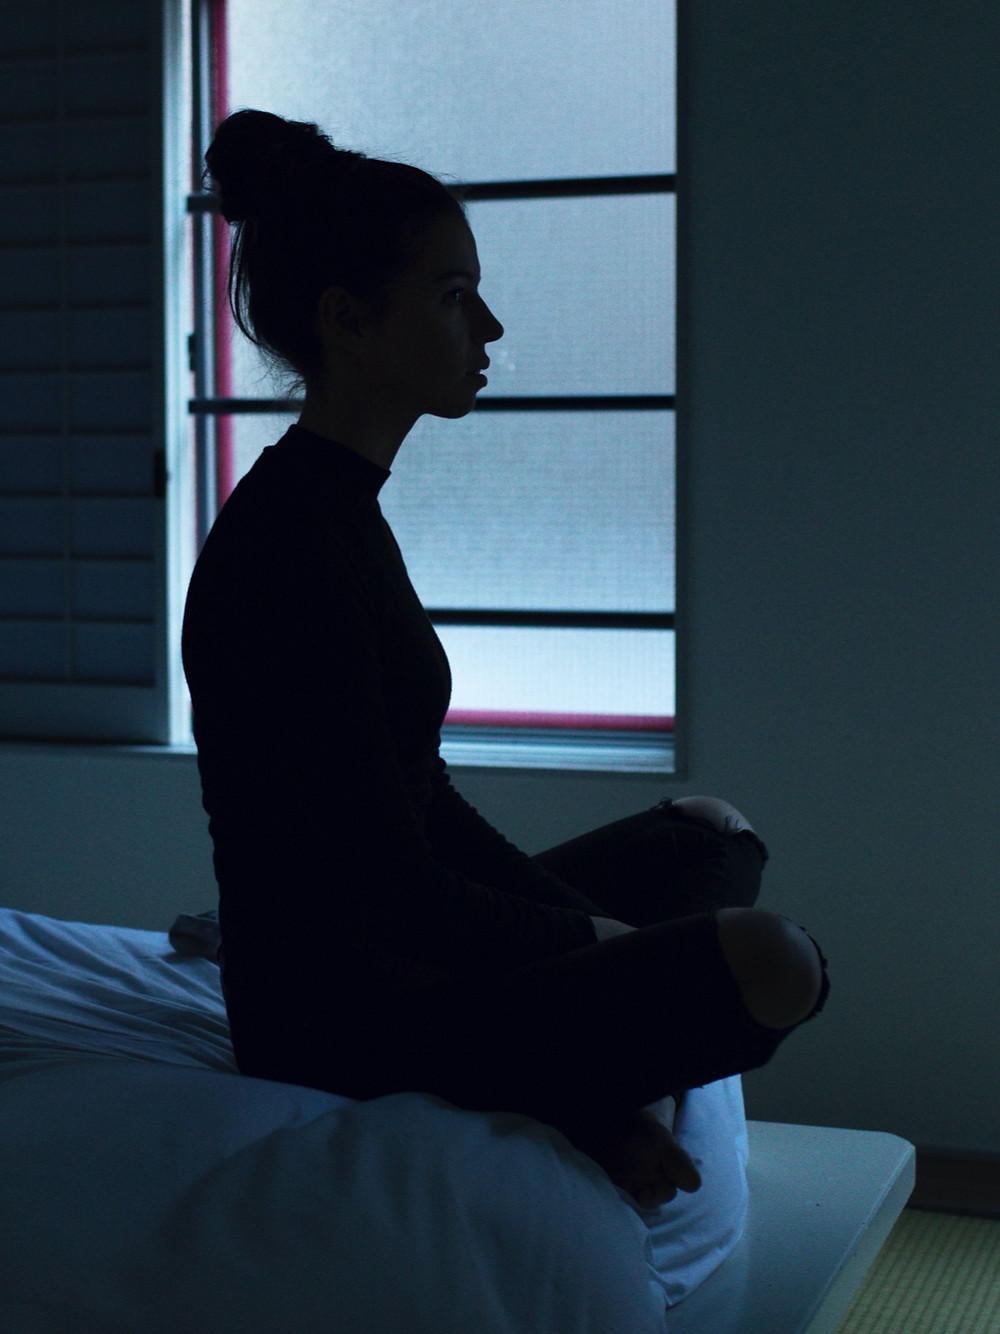 woman sitting in bed mindful